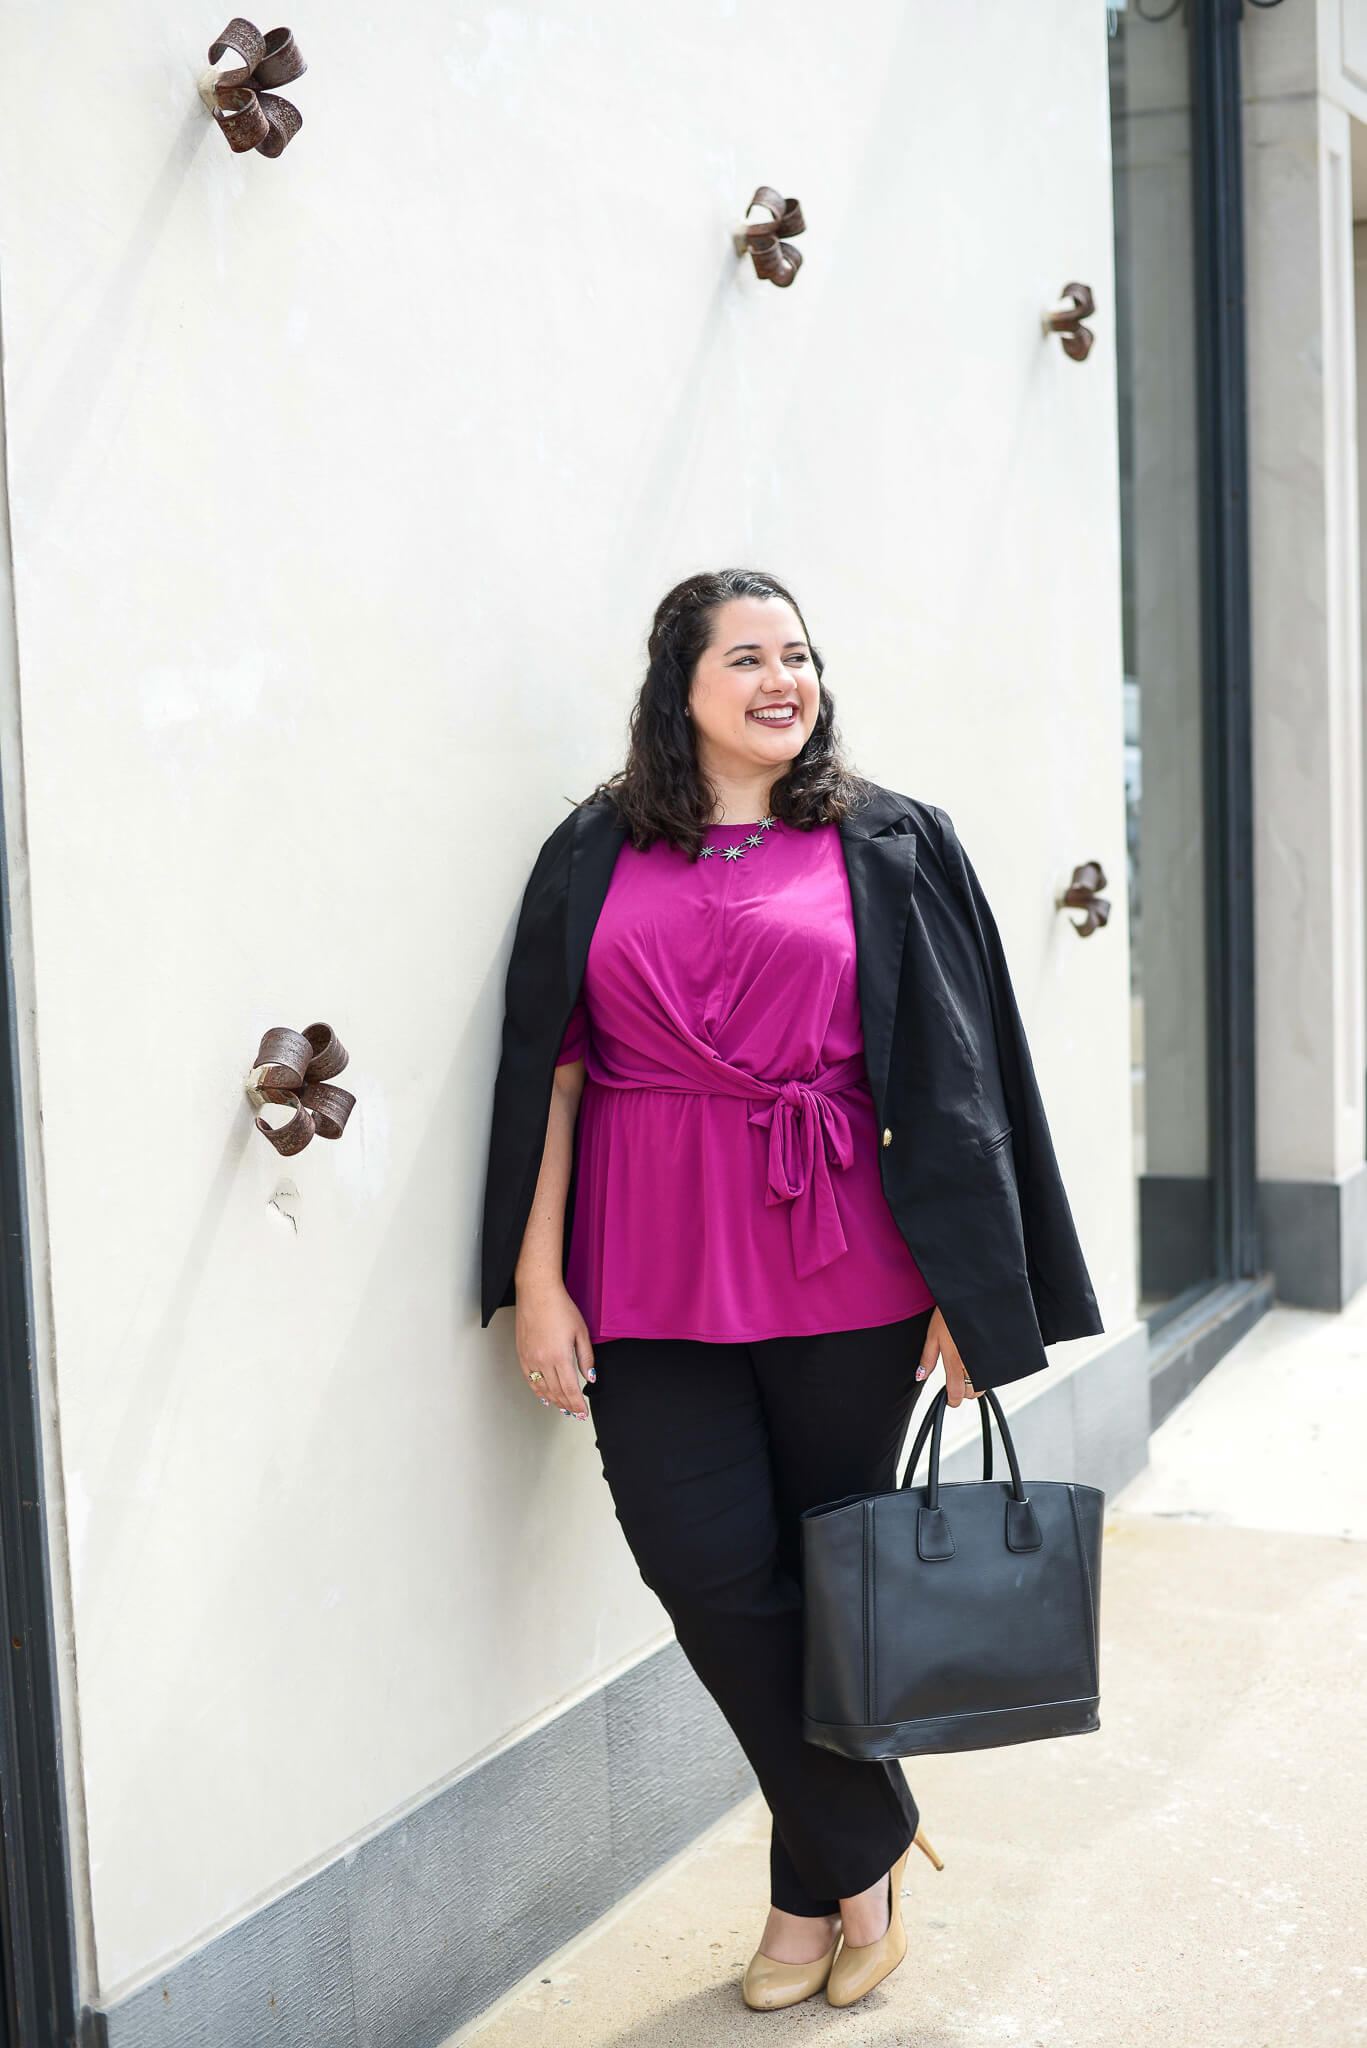 Wearing business casual to the office every day doesn't have to be boring. I'm sharing one of my biggest tips for showing your personality at the office - wearing color - with the help of Lane Bryant.